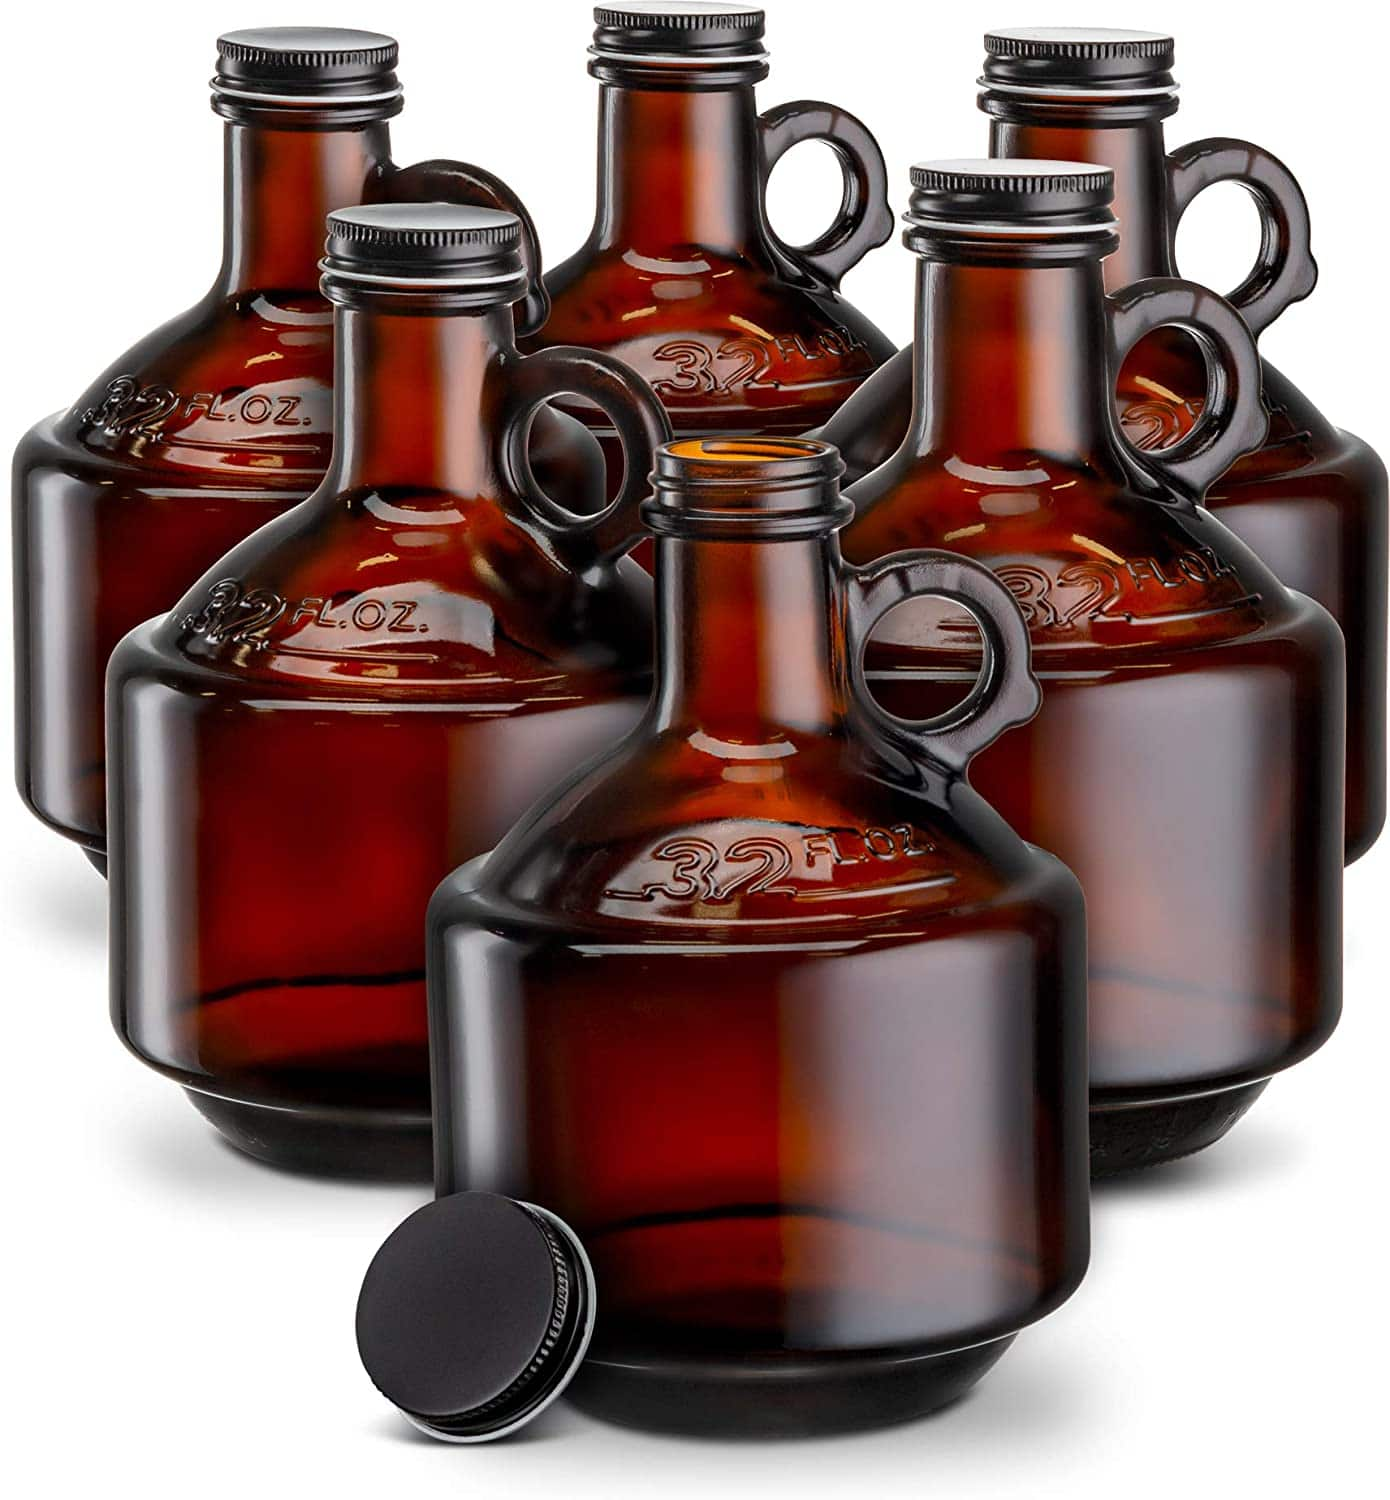 6ct of 32oz Amber Glass Bottles / Growlers w/ Black Plastisol Lined Lids $19 + free s/h